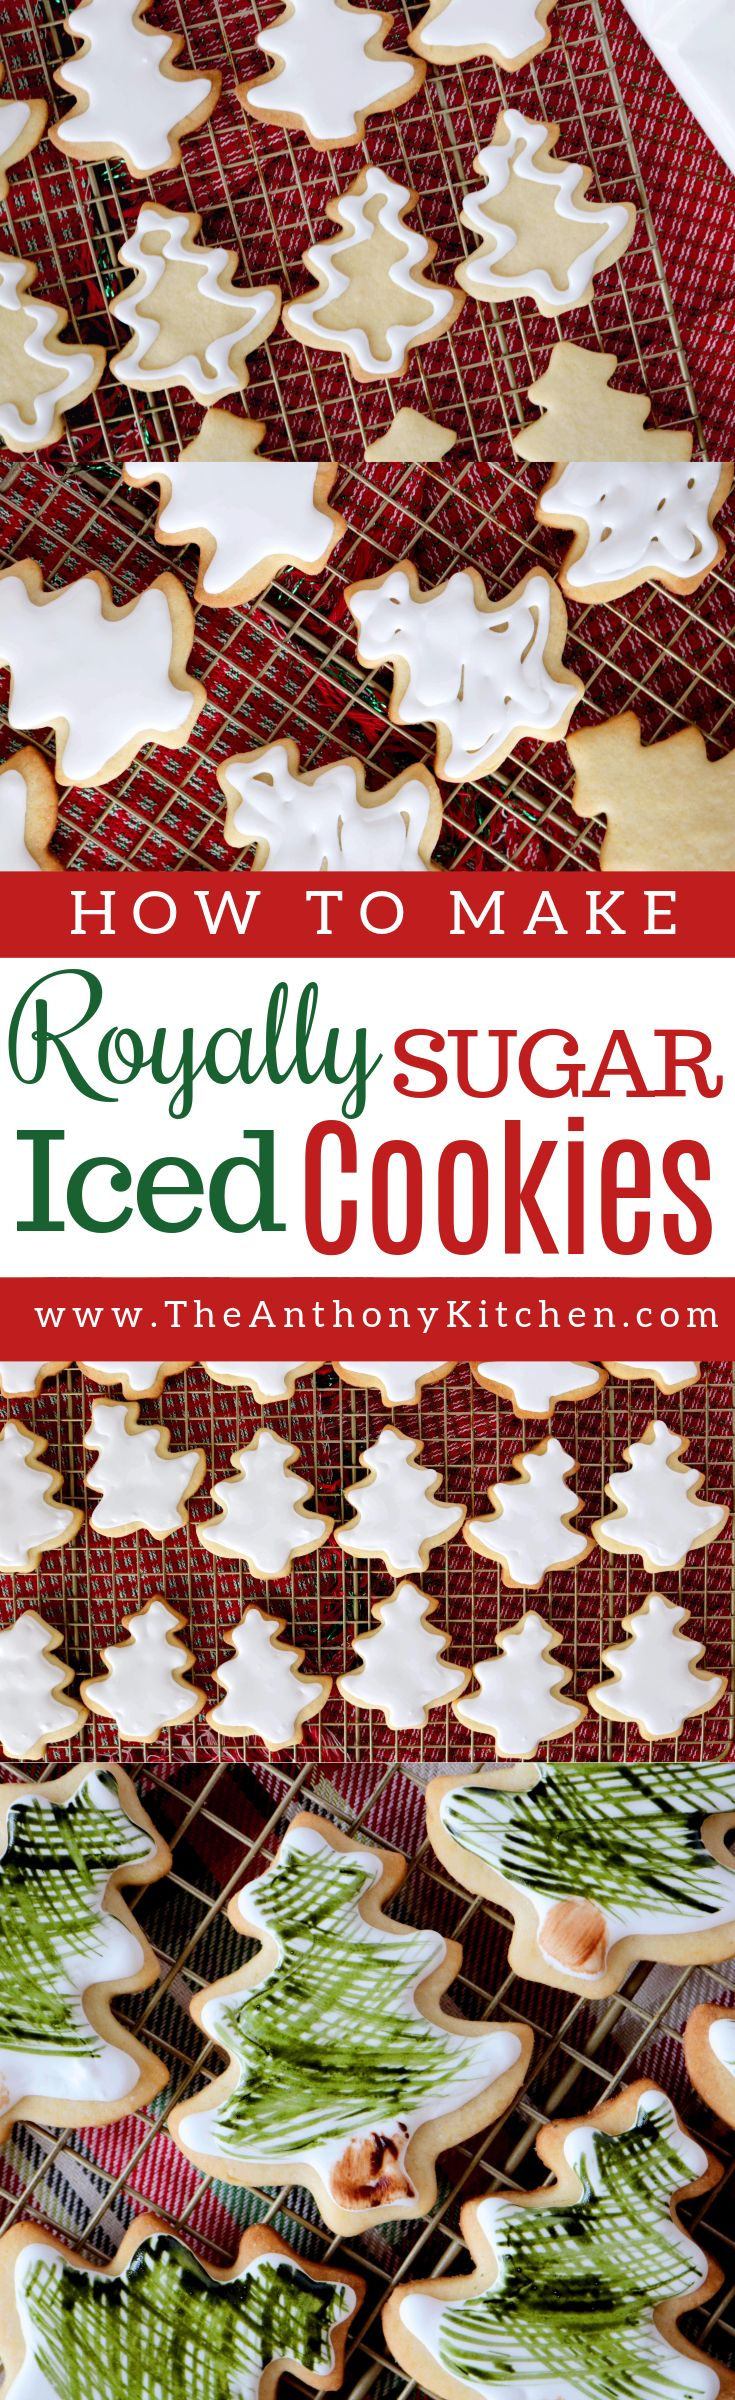 Royally Iced Sugar Cookies | A recipe for royally iced sugar cookies. Plus, tips for working with royal icing and homemade sugar cookie dough | #sugarcookies #christmascookies #cookieswithroyalicing